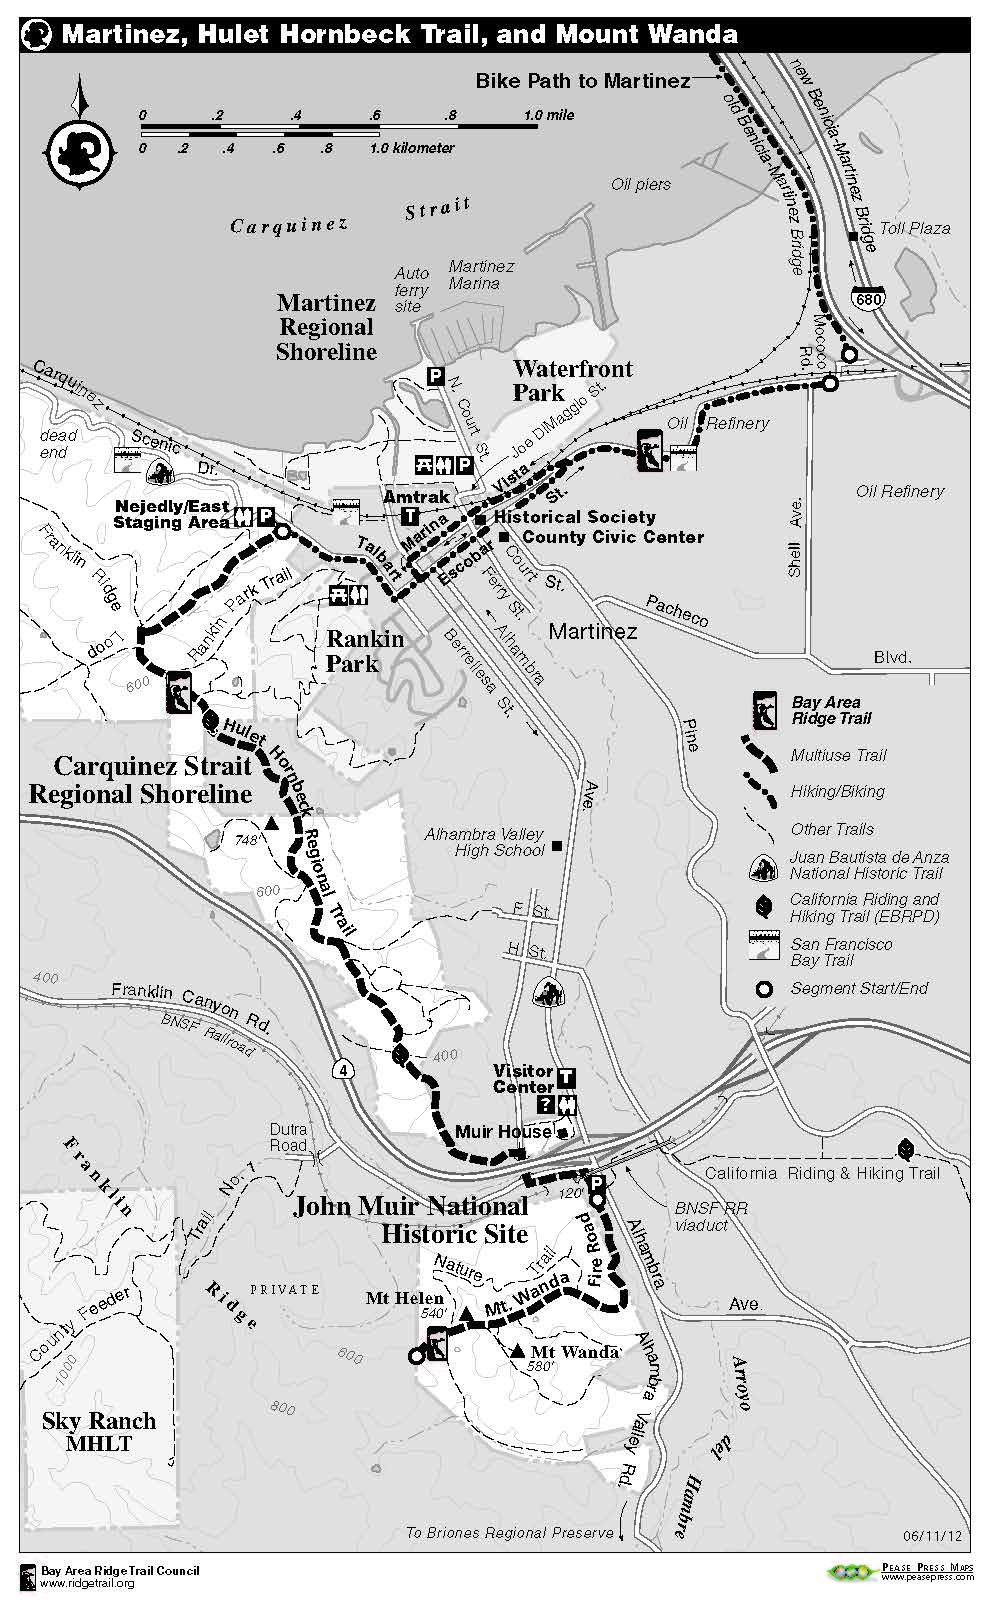 The Best Way To Explore The Ridge Trail Is Using Bay Area Ridge Trail The Official Guide For Hikers Mountain Bikers And Equestrian Trail Trail Maps Bay Area Find trails > california > bay area ridge trail (san francisco presidio). pinterest